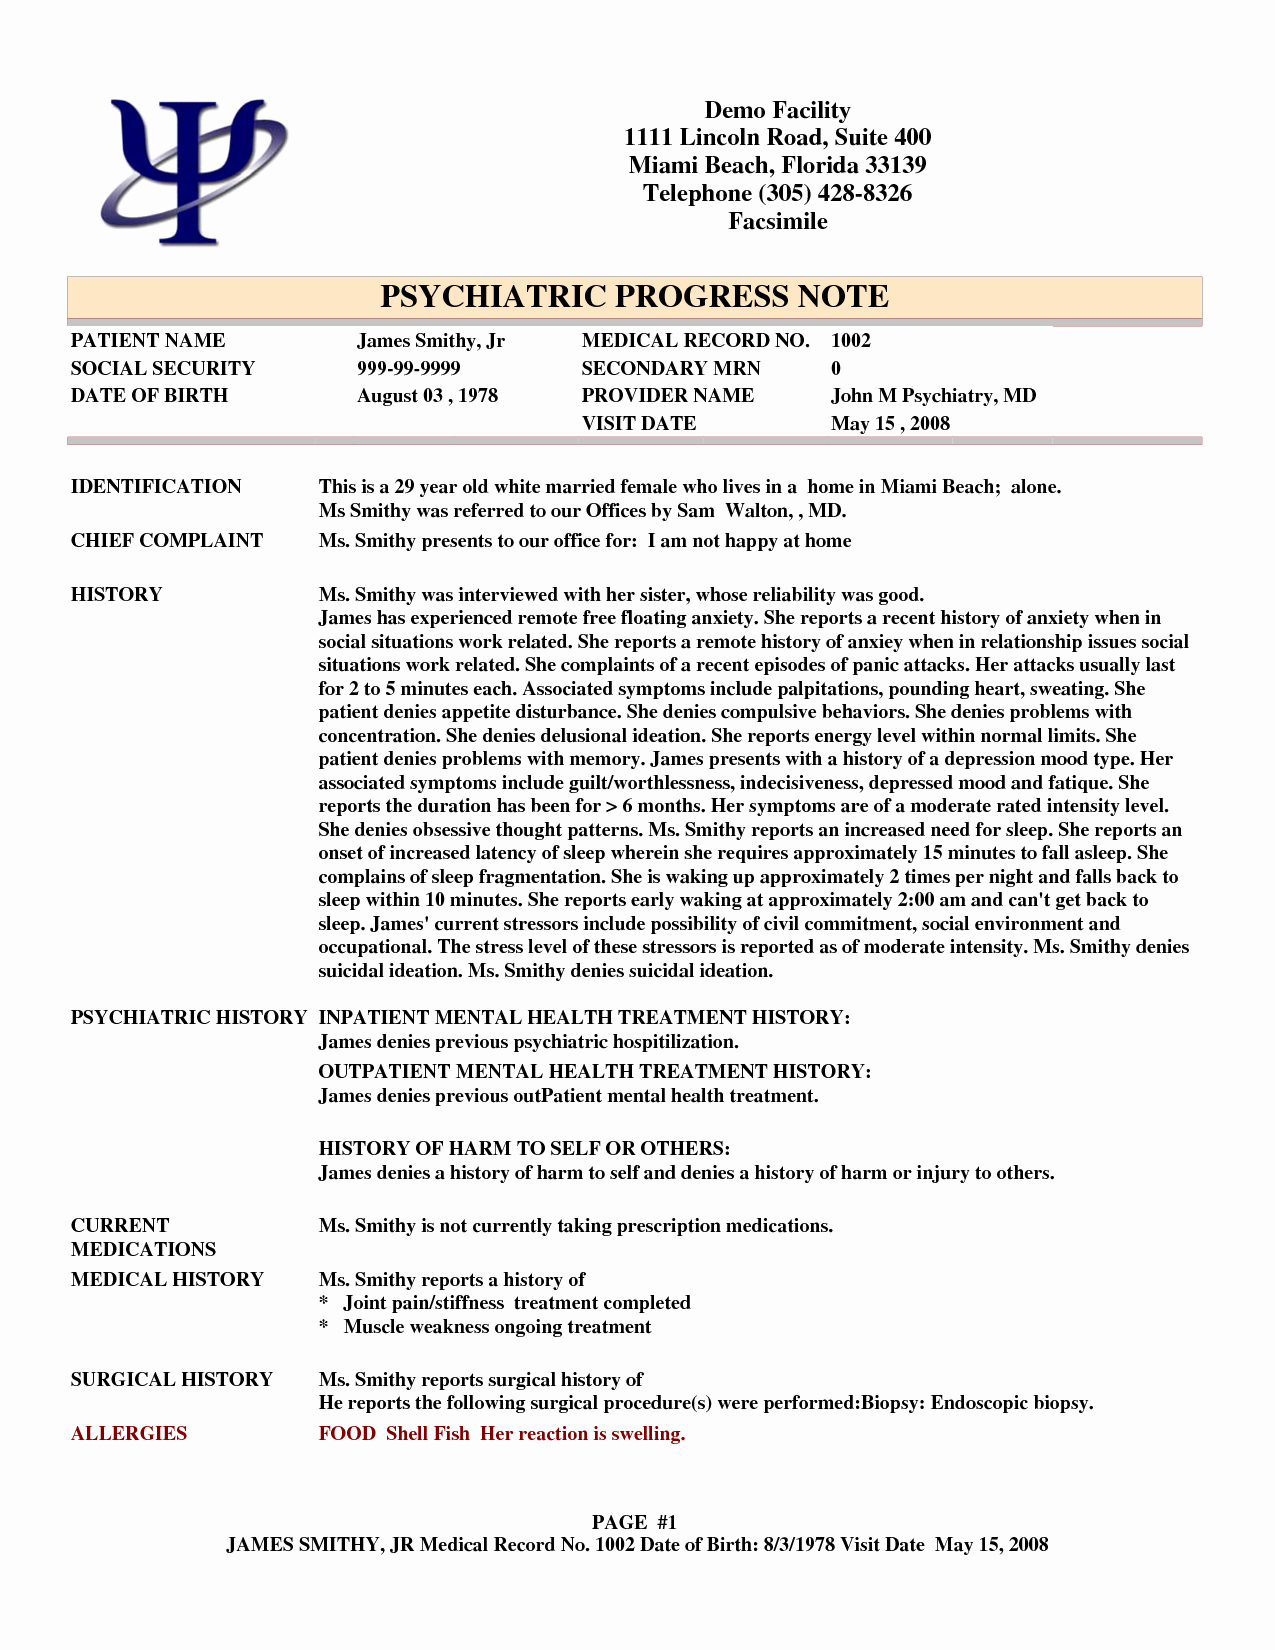 Psychiatry soap Note Template Beautiful Psychotherapy Progress Note Template Pdf